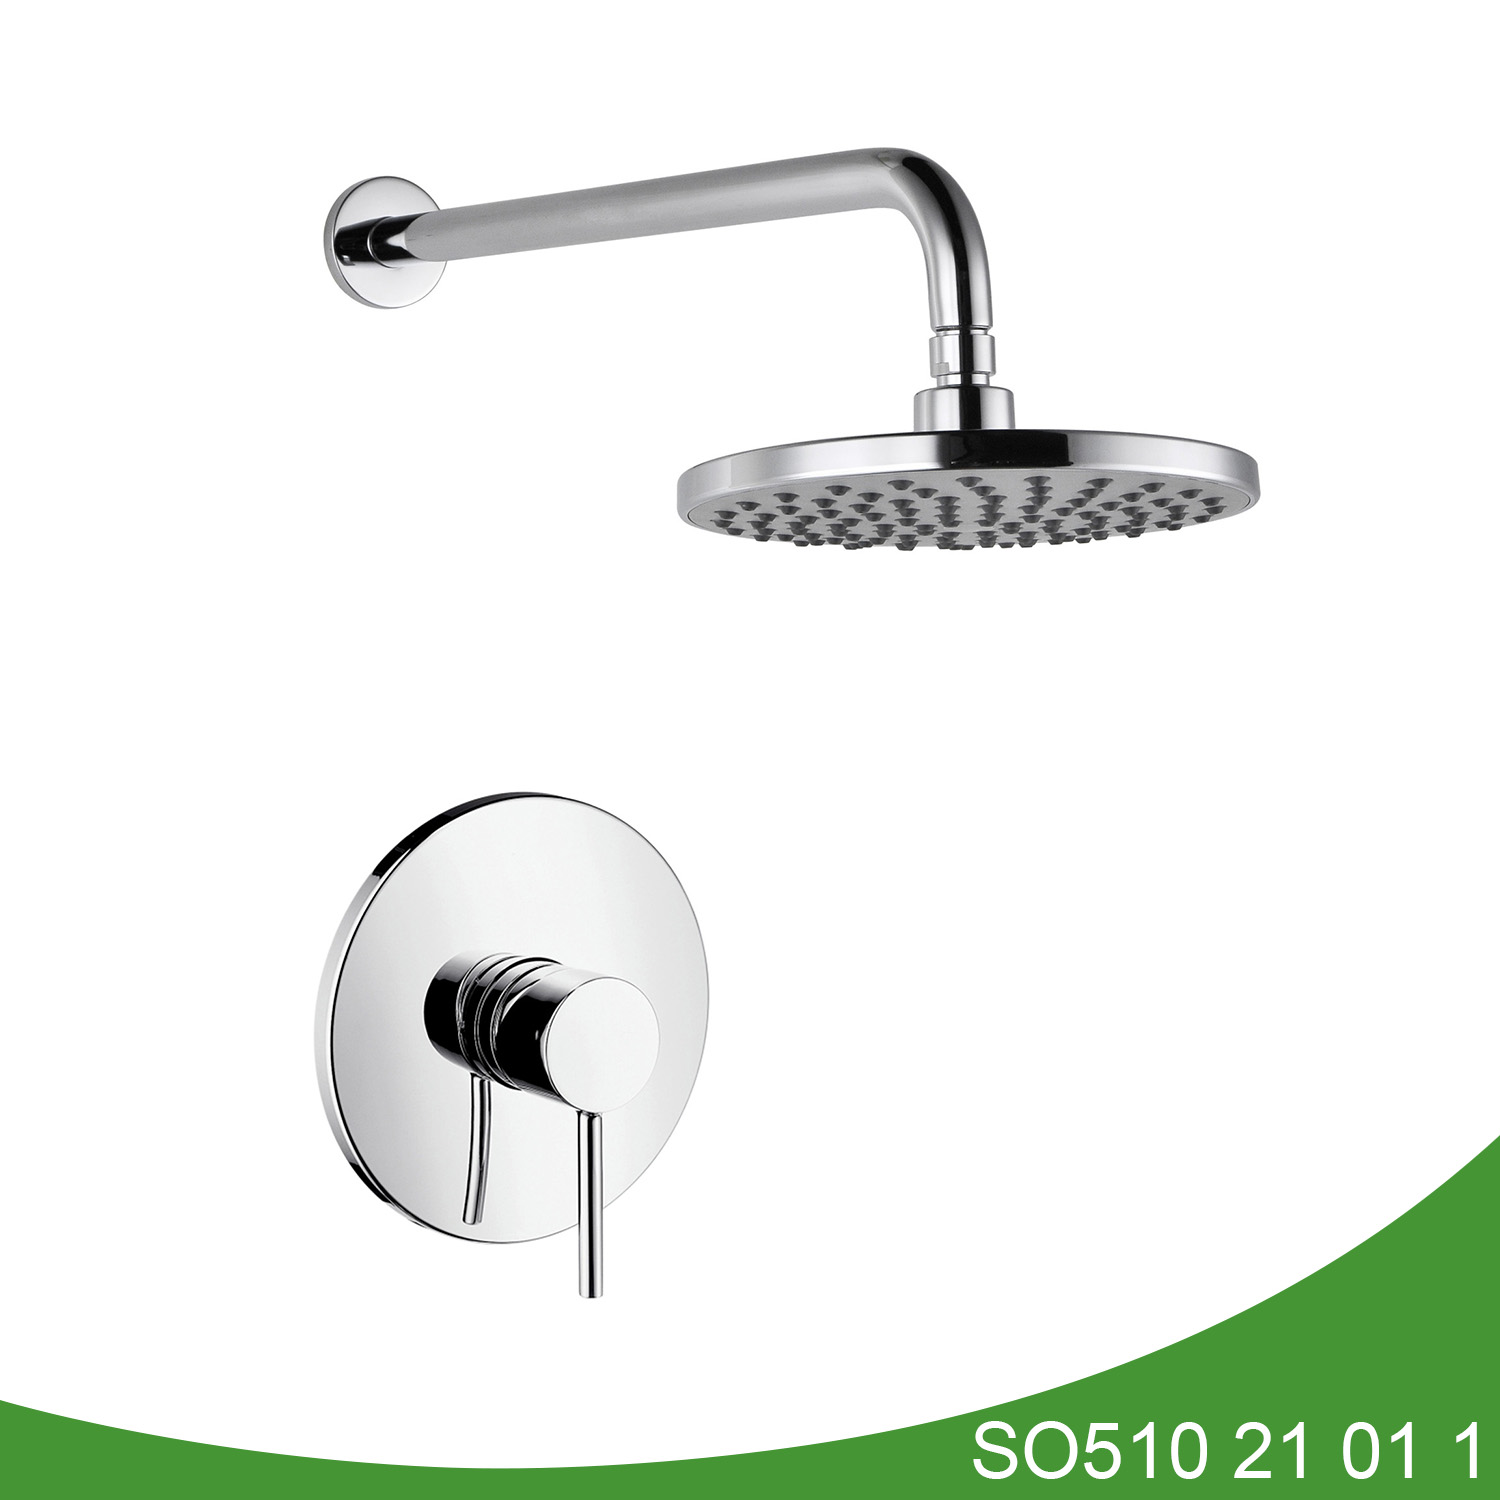 Hot and cold shower set SO510 21 01 1